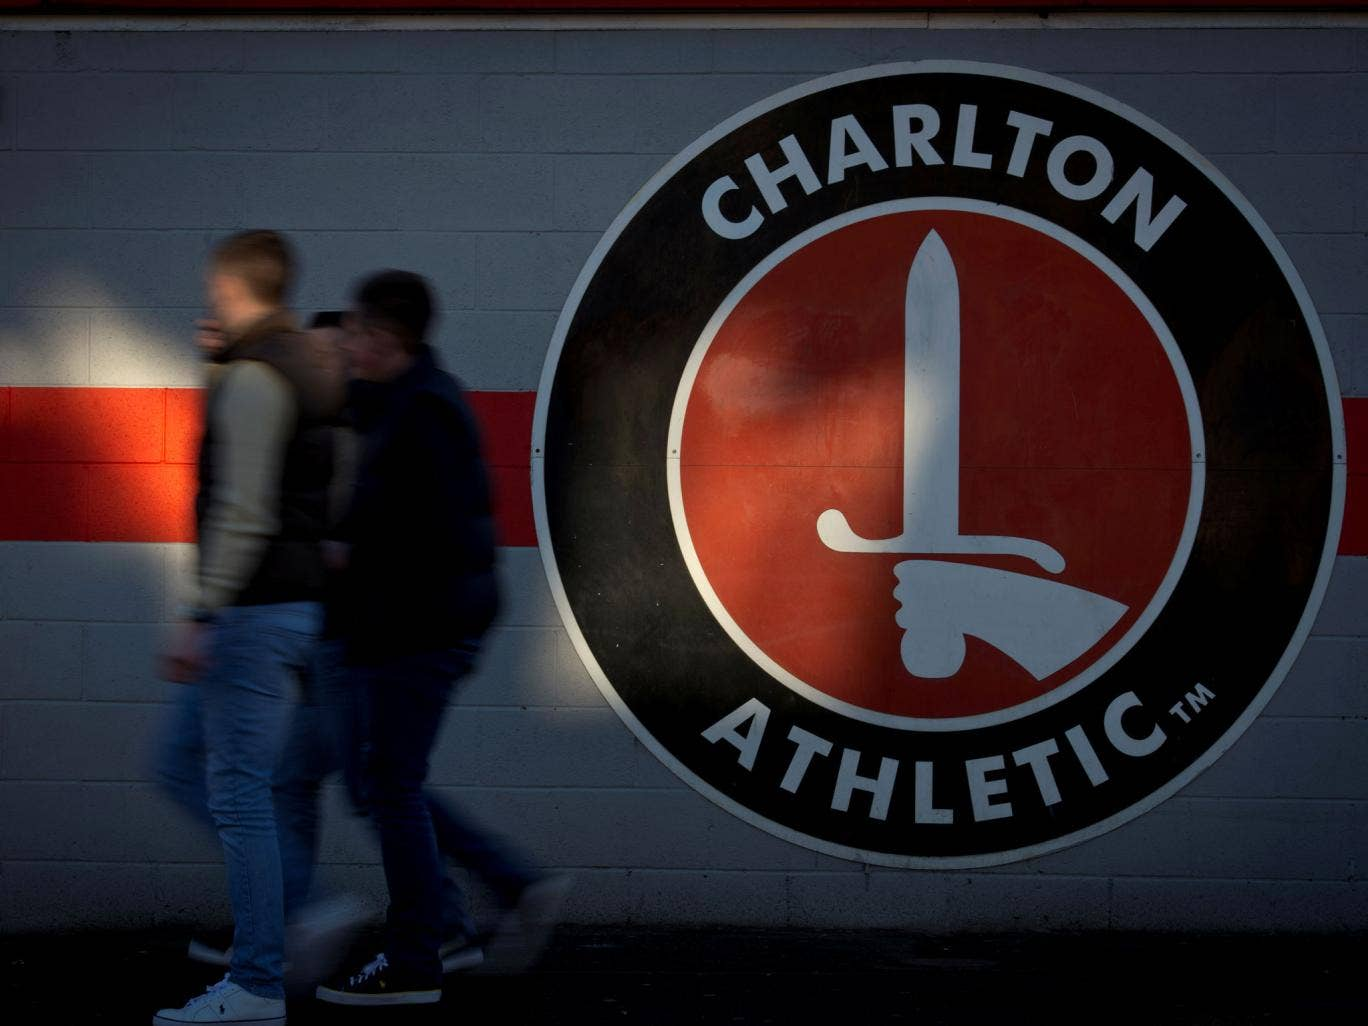 Fans arrive at Charlton Athletic's home ground The Valley